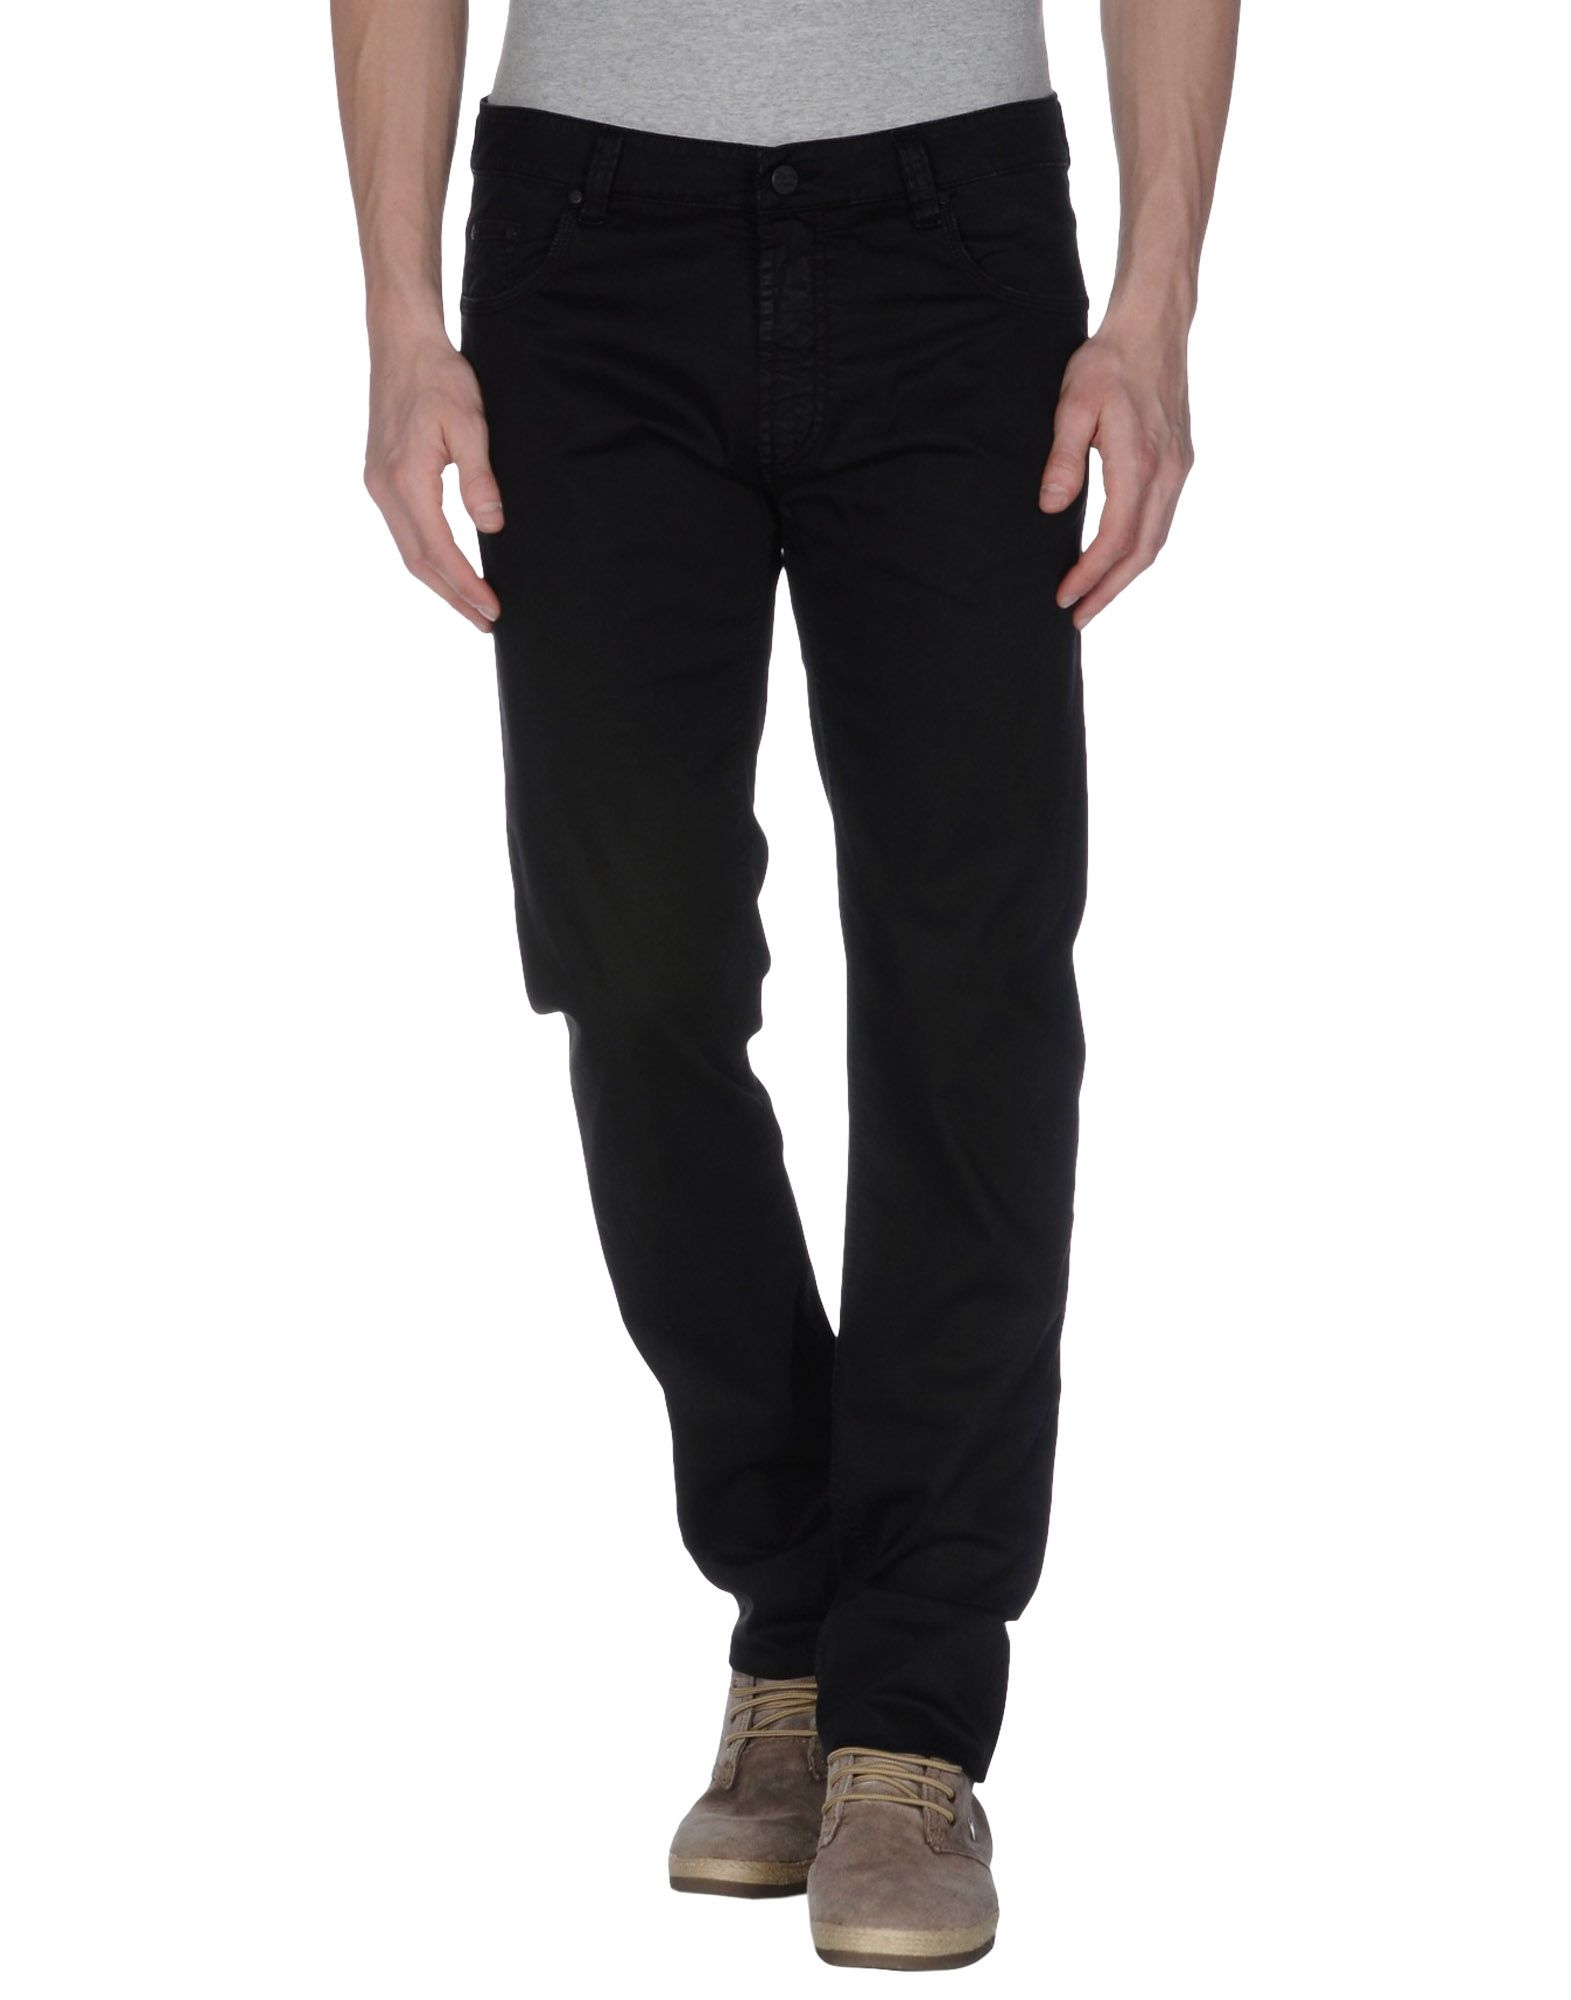 Buy Casual trousers from the Womens department at Debenhams. You'll find the widest range of Casual trousers products online and delivered to your door. Shop today! Petite black slim fit trousers Save. Was £ Now £ Wallis Black coated trouser Save. Was £ Now £ Wallis.